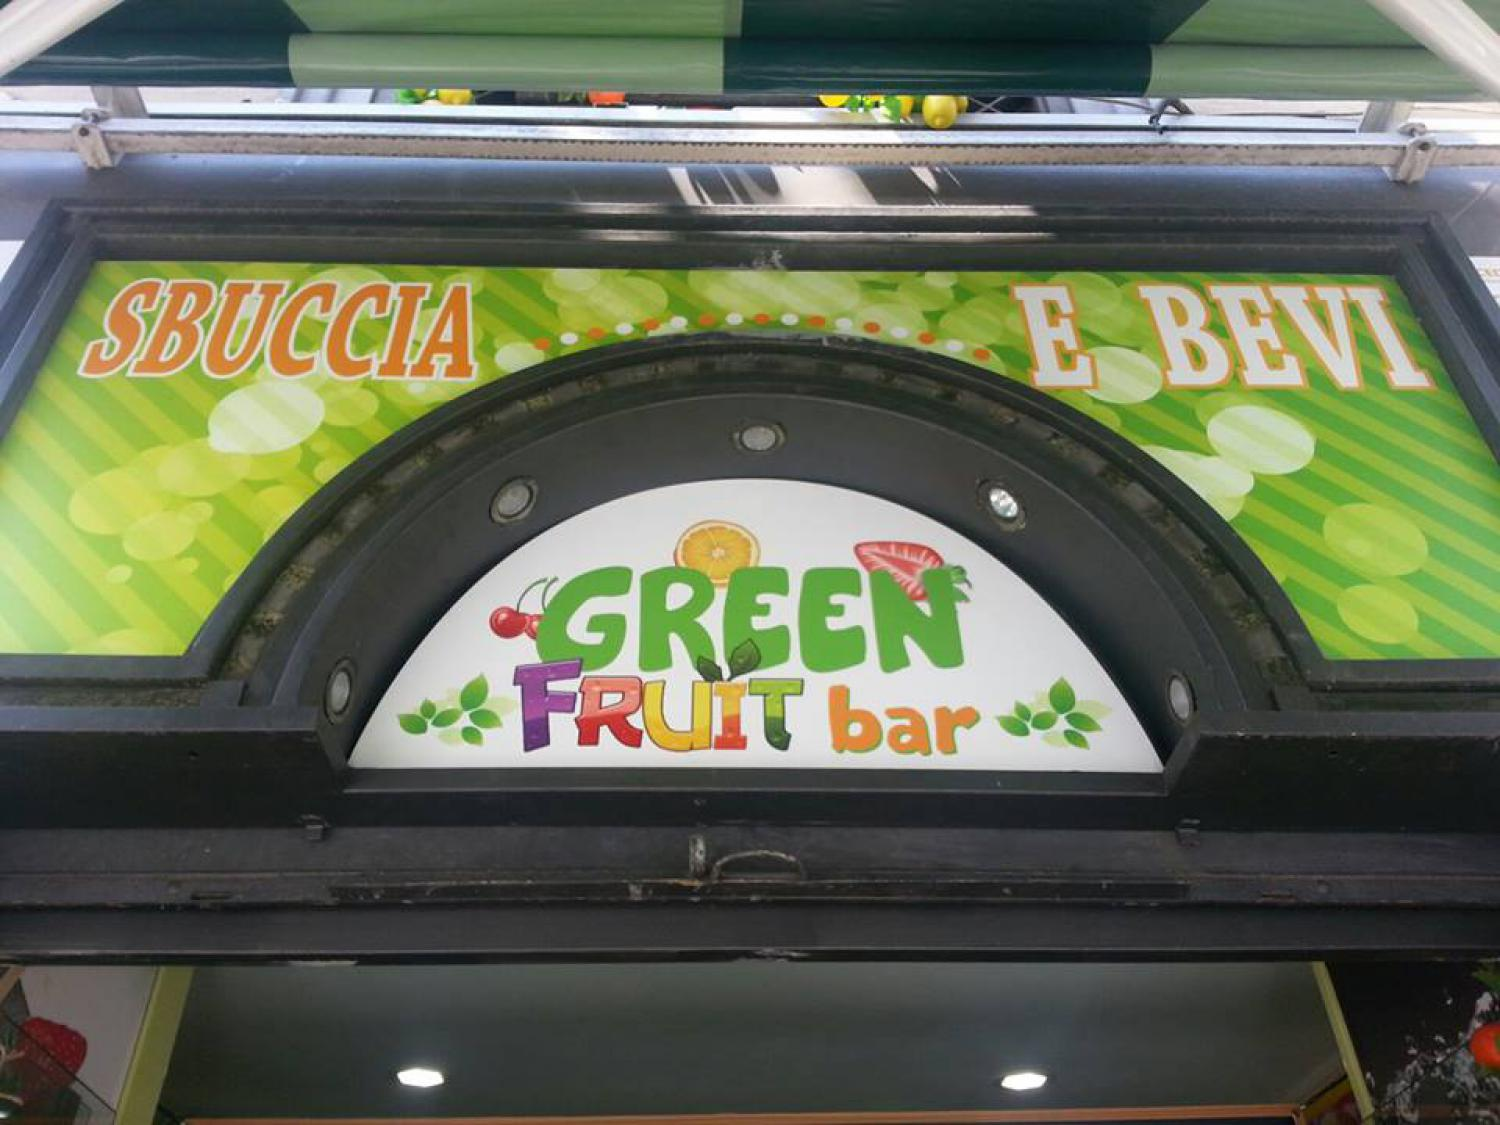 Sbuccia e Bevi Green Fruit Bar